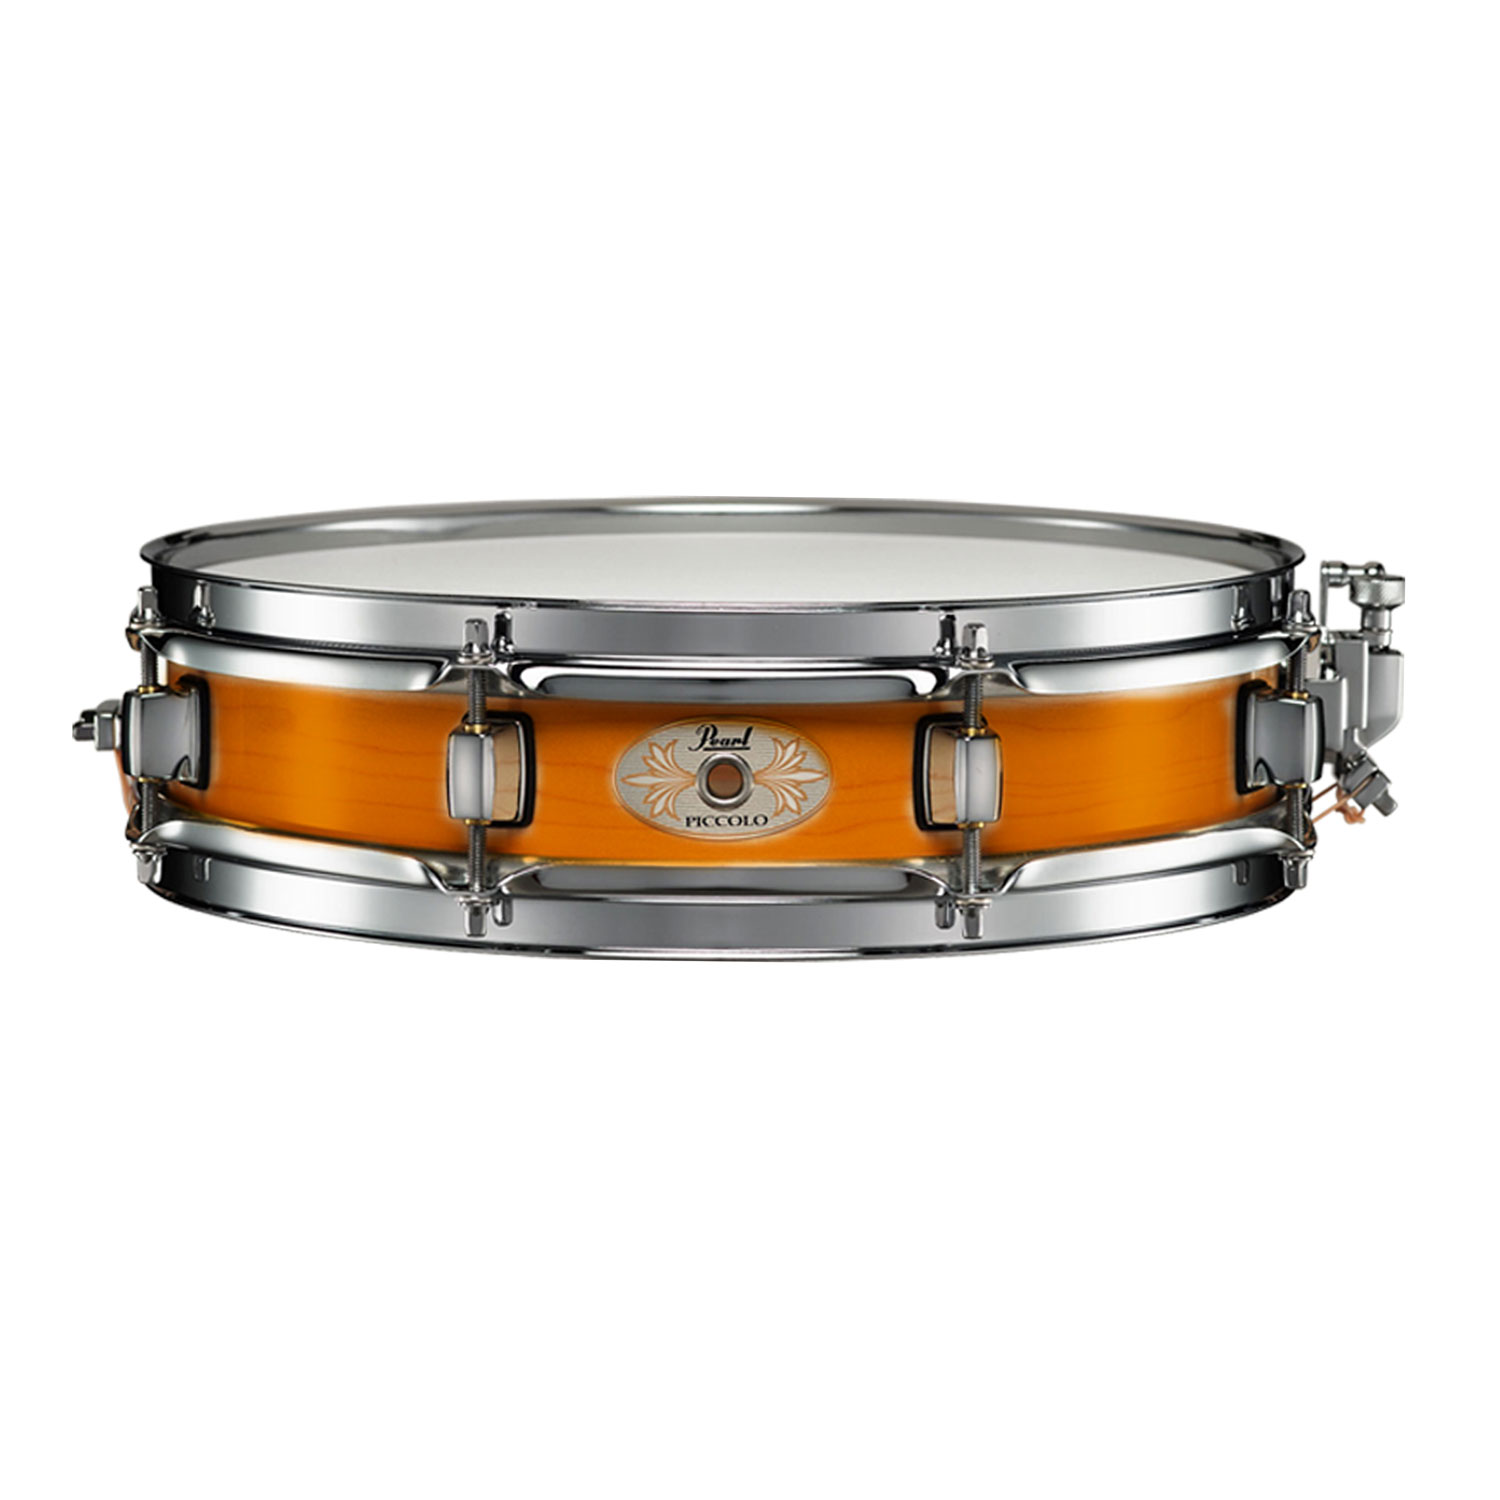 "Pearl 13"" x 3"" Maple Piccolo Snare Drum in Liquid Amber"